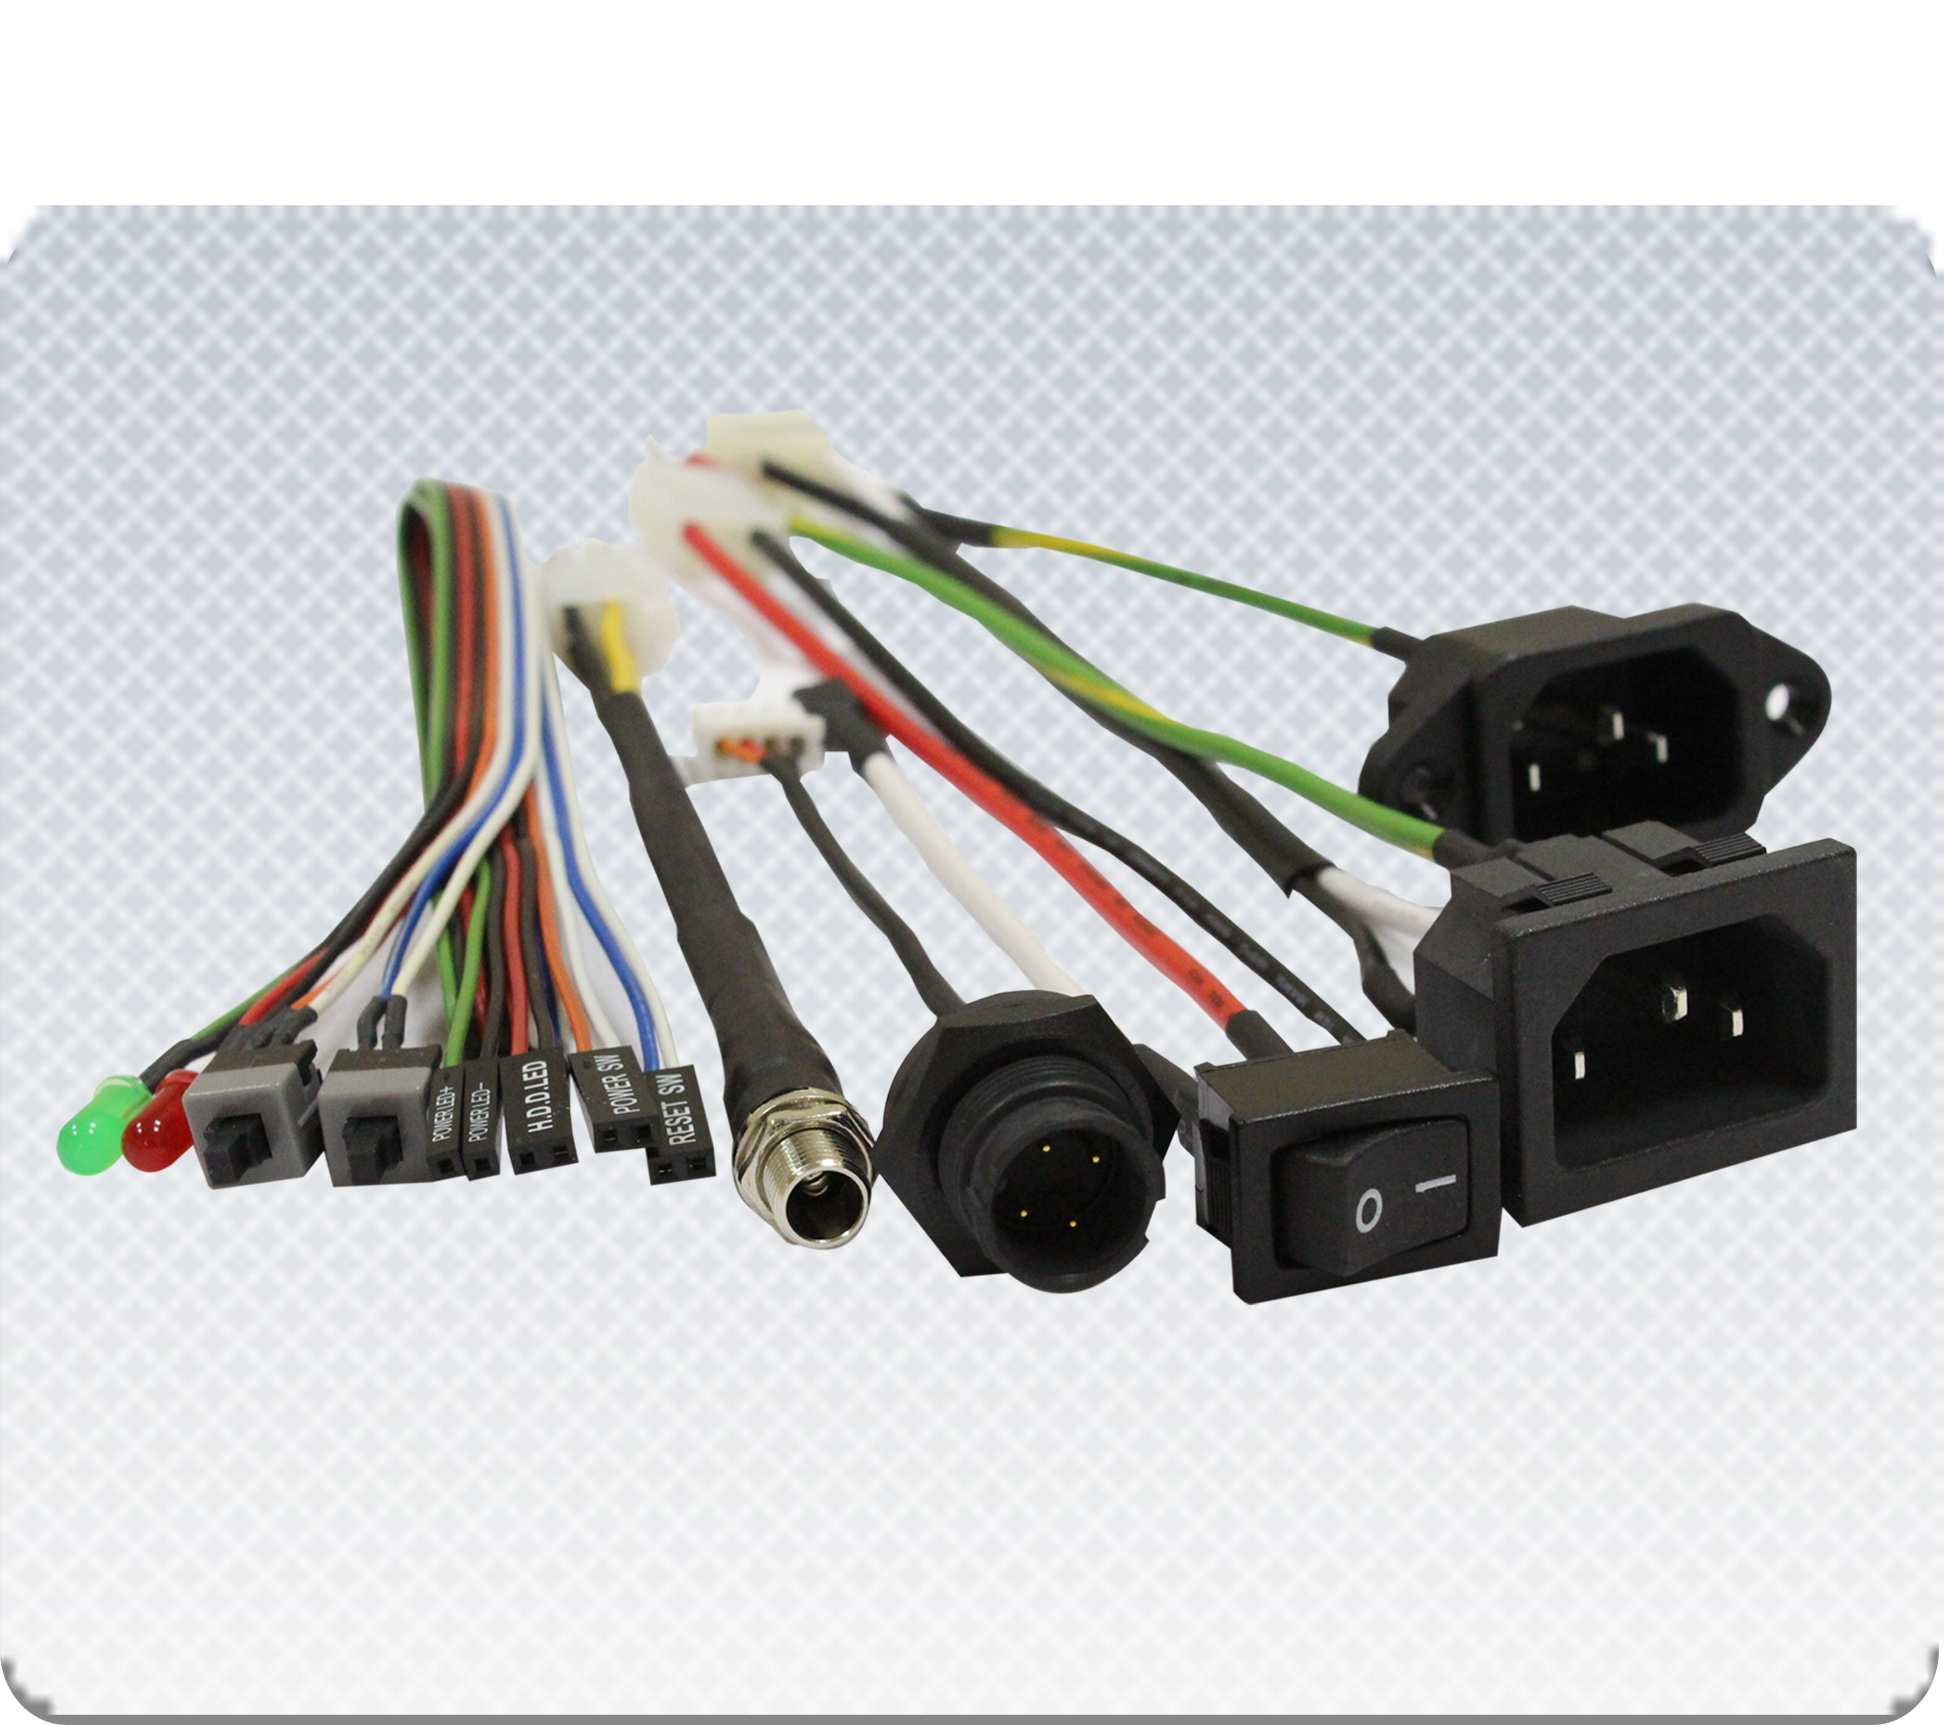 Wiring Harness(1)(3) molded cable, molded cable manufacturer & supplier molded wire harness at bayanpartner.co